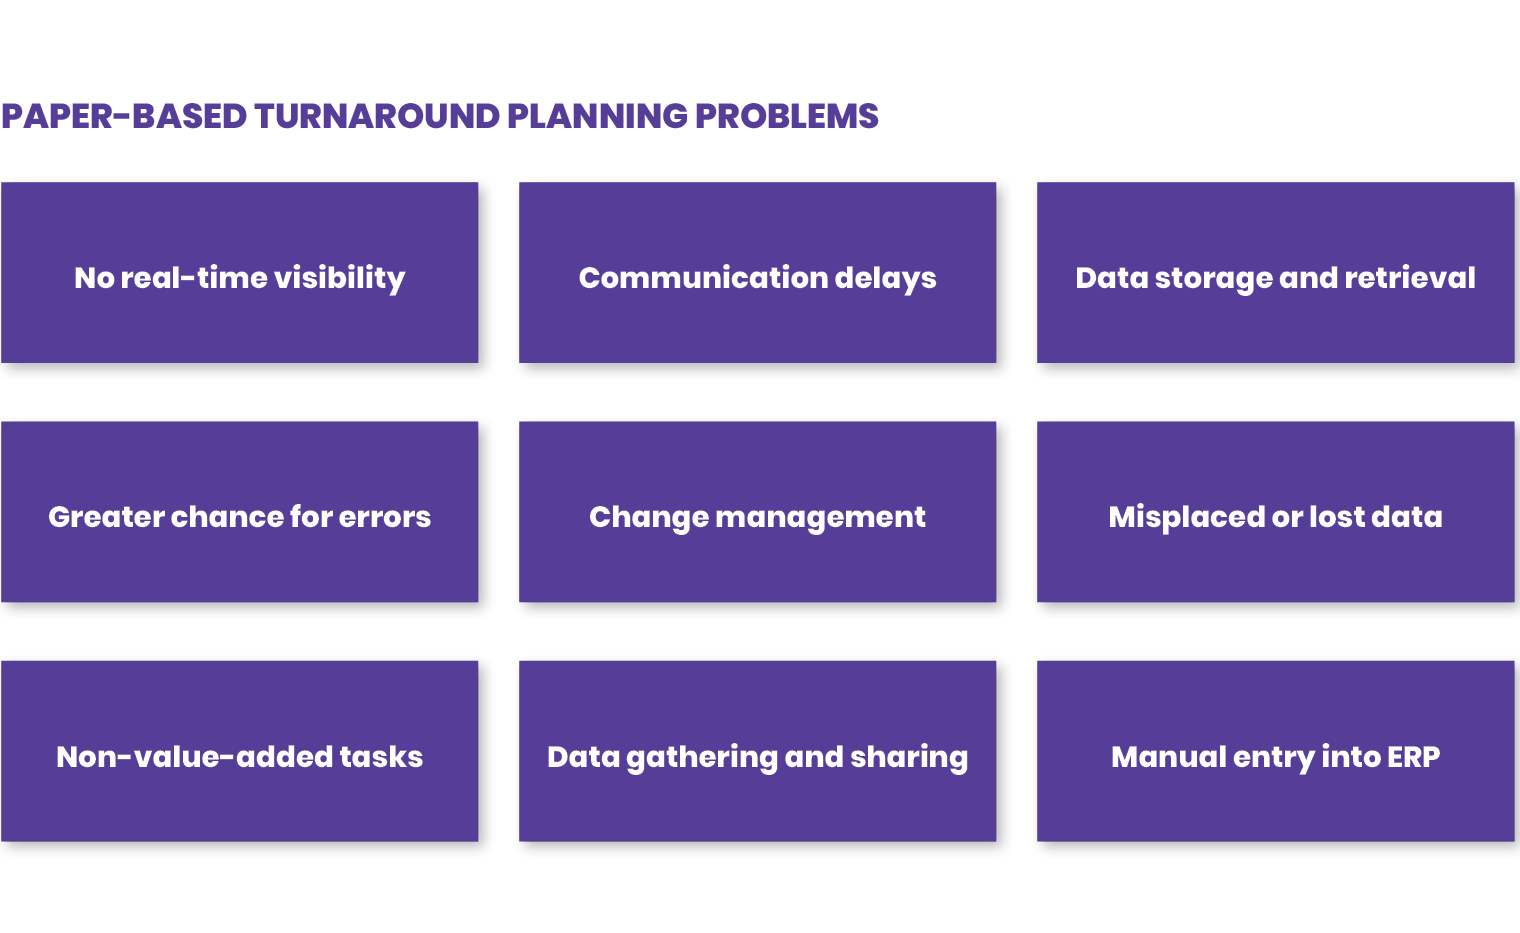 Paper-Based-Turnaround-Planning-Problems-chart-infographic